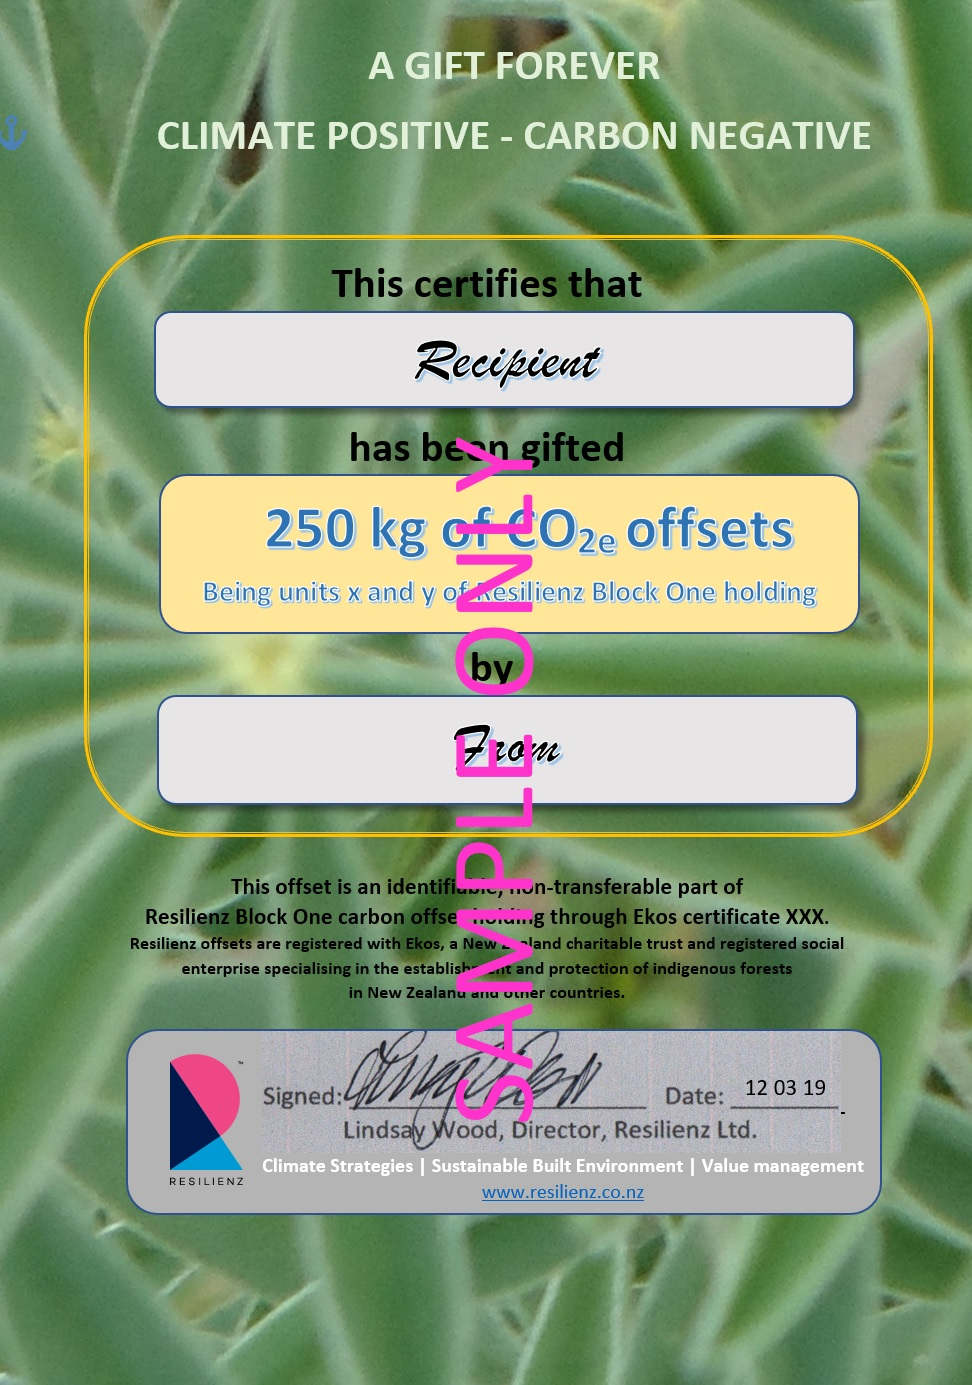 Resilienz Gift Certificate